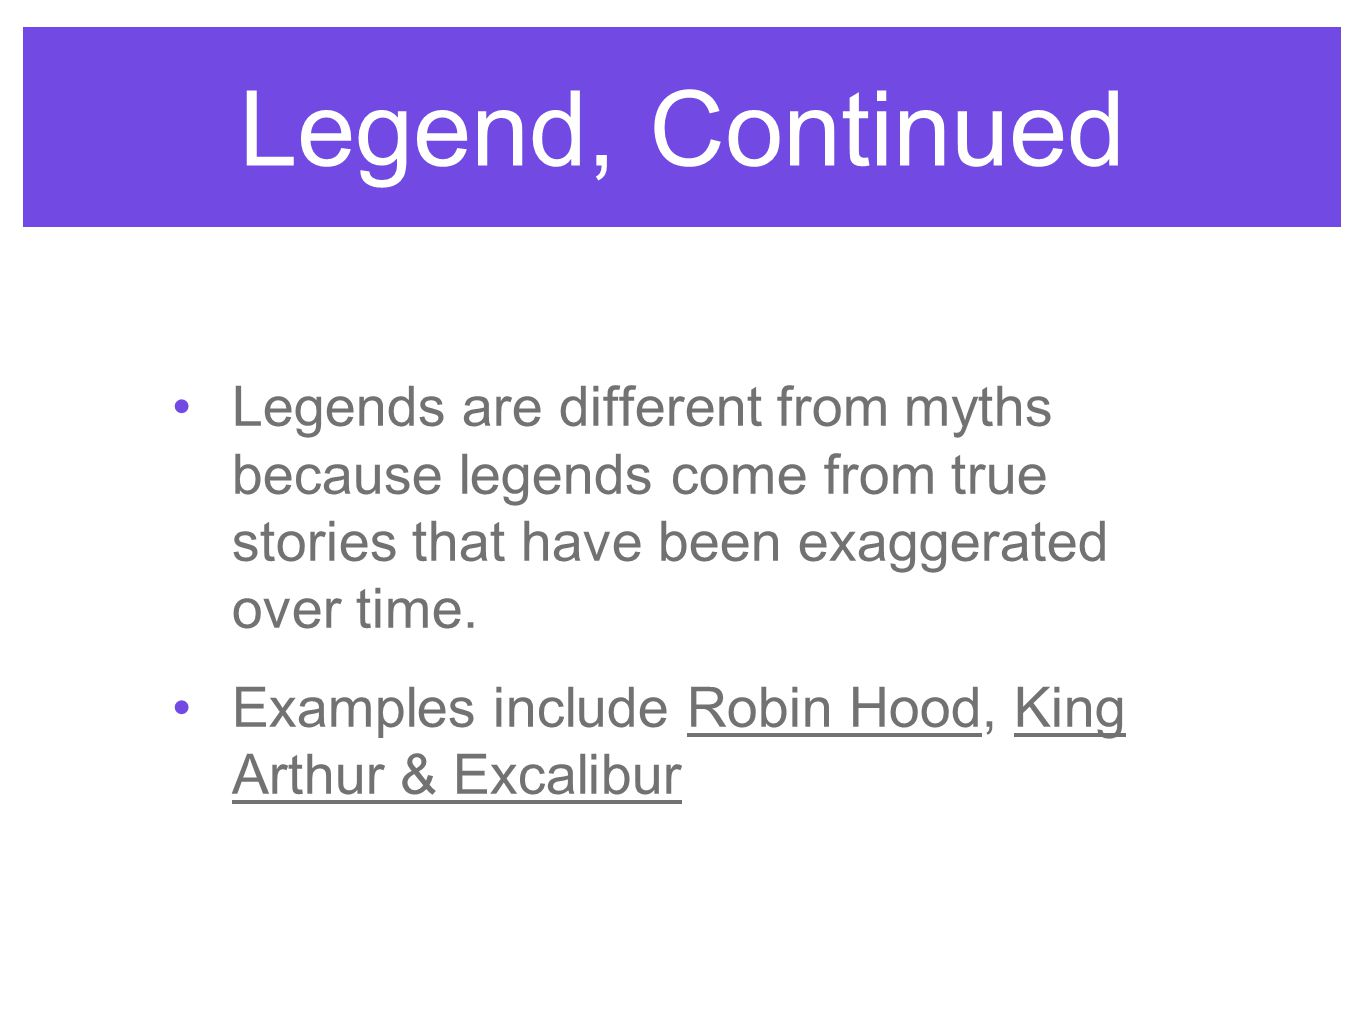 Legend, Continued Legends are different from myths because legends come from true stories that have been exaggerated over time. Examples include Robin